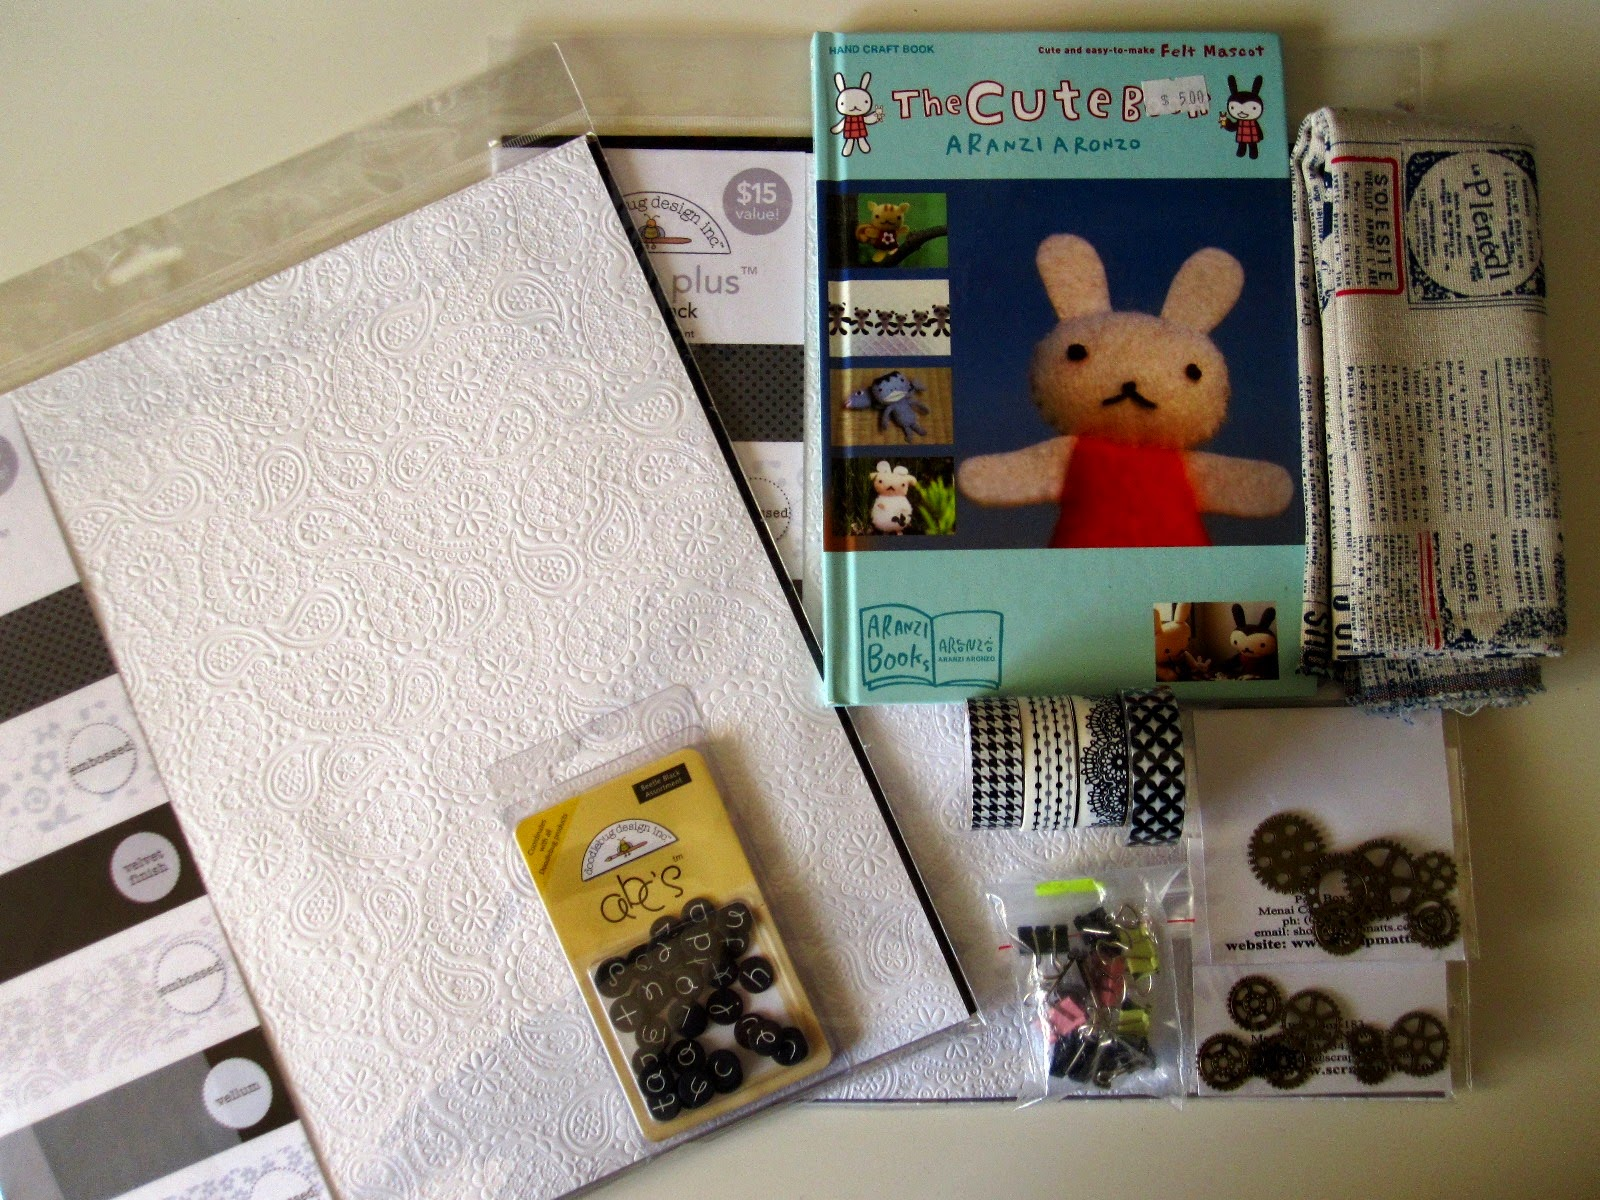 Selection of craft items including scrapbooking paper, fabric, washi tape, charms and a book.